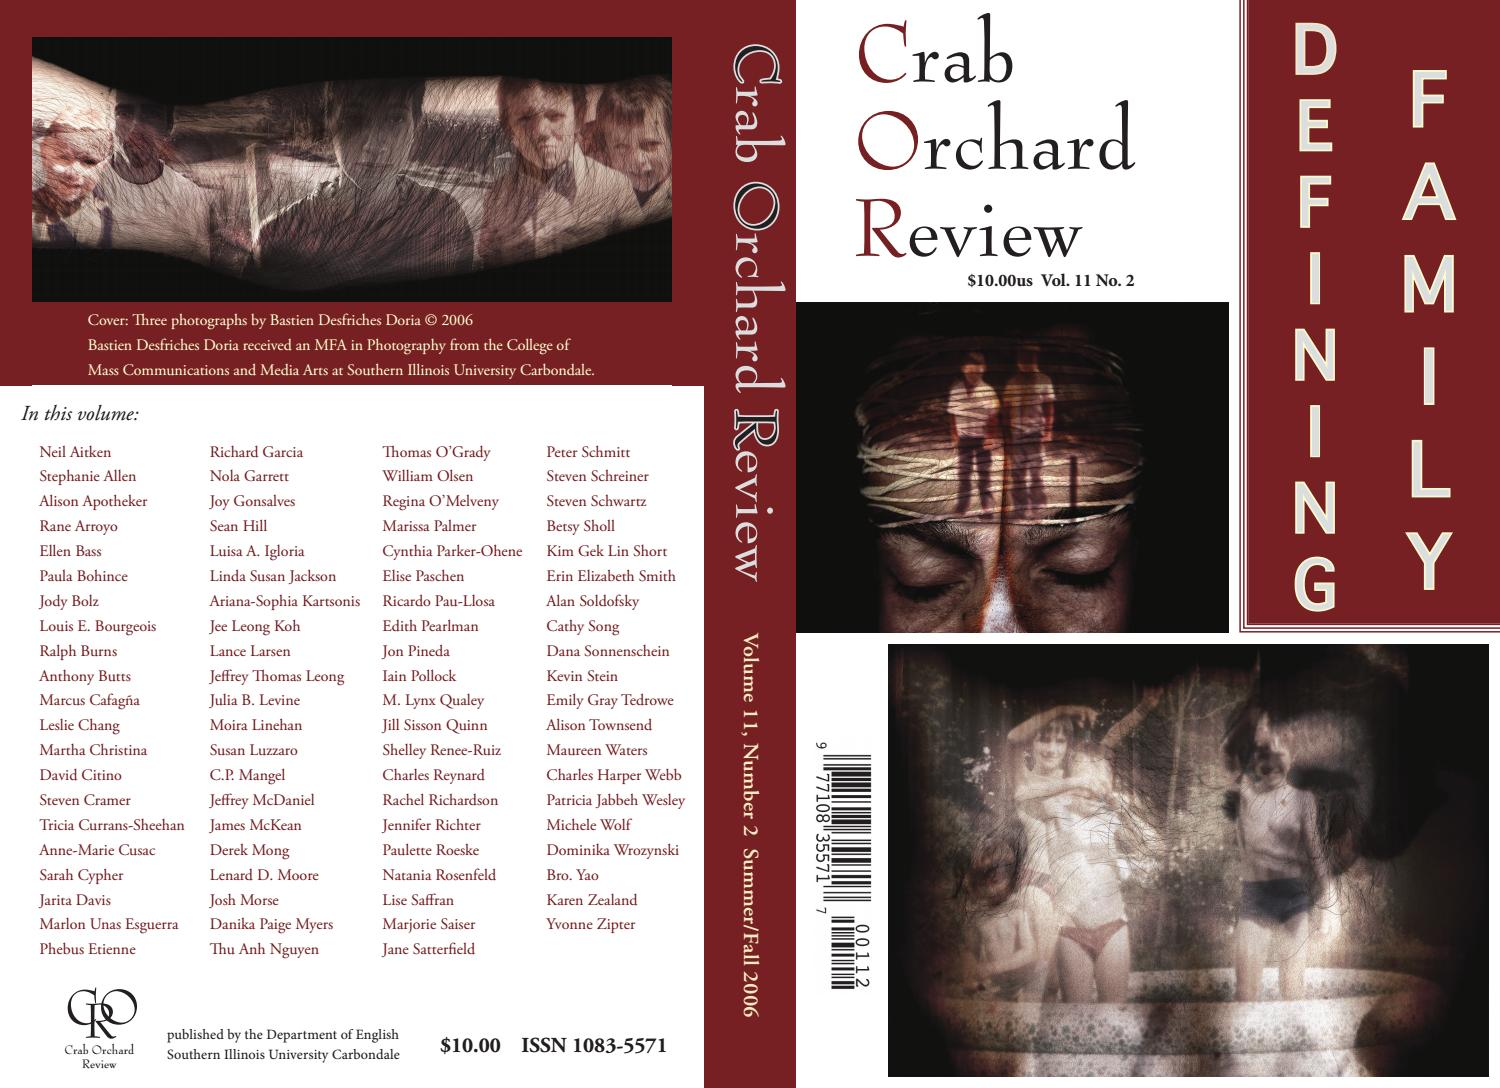 6a09927ee Crab Orchard Review Vol 11 No 2 S/F 2006 by Crab Orchard Review - issuu